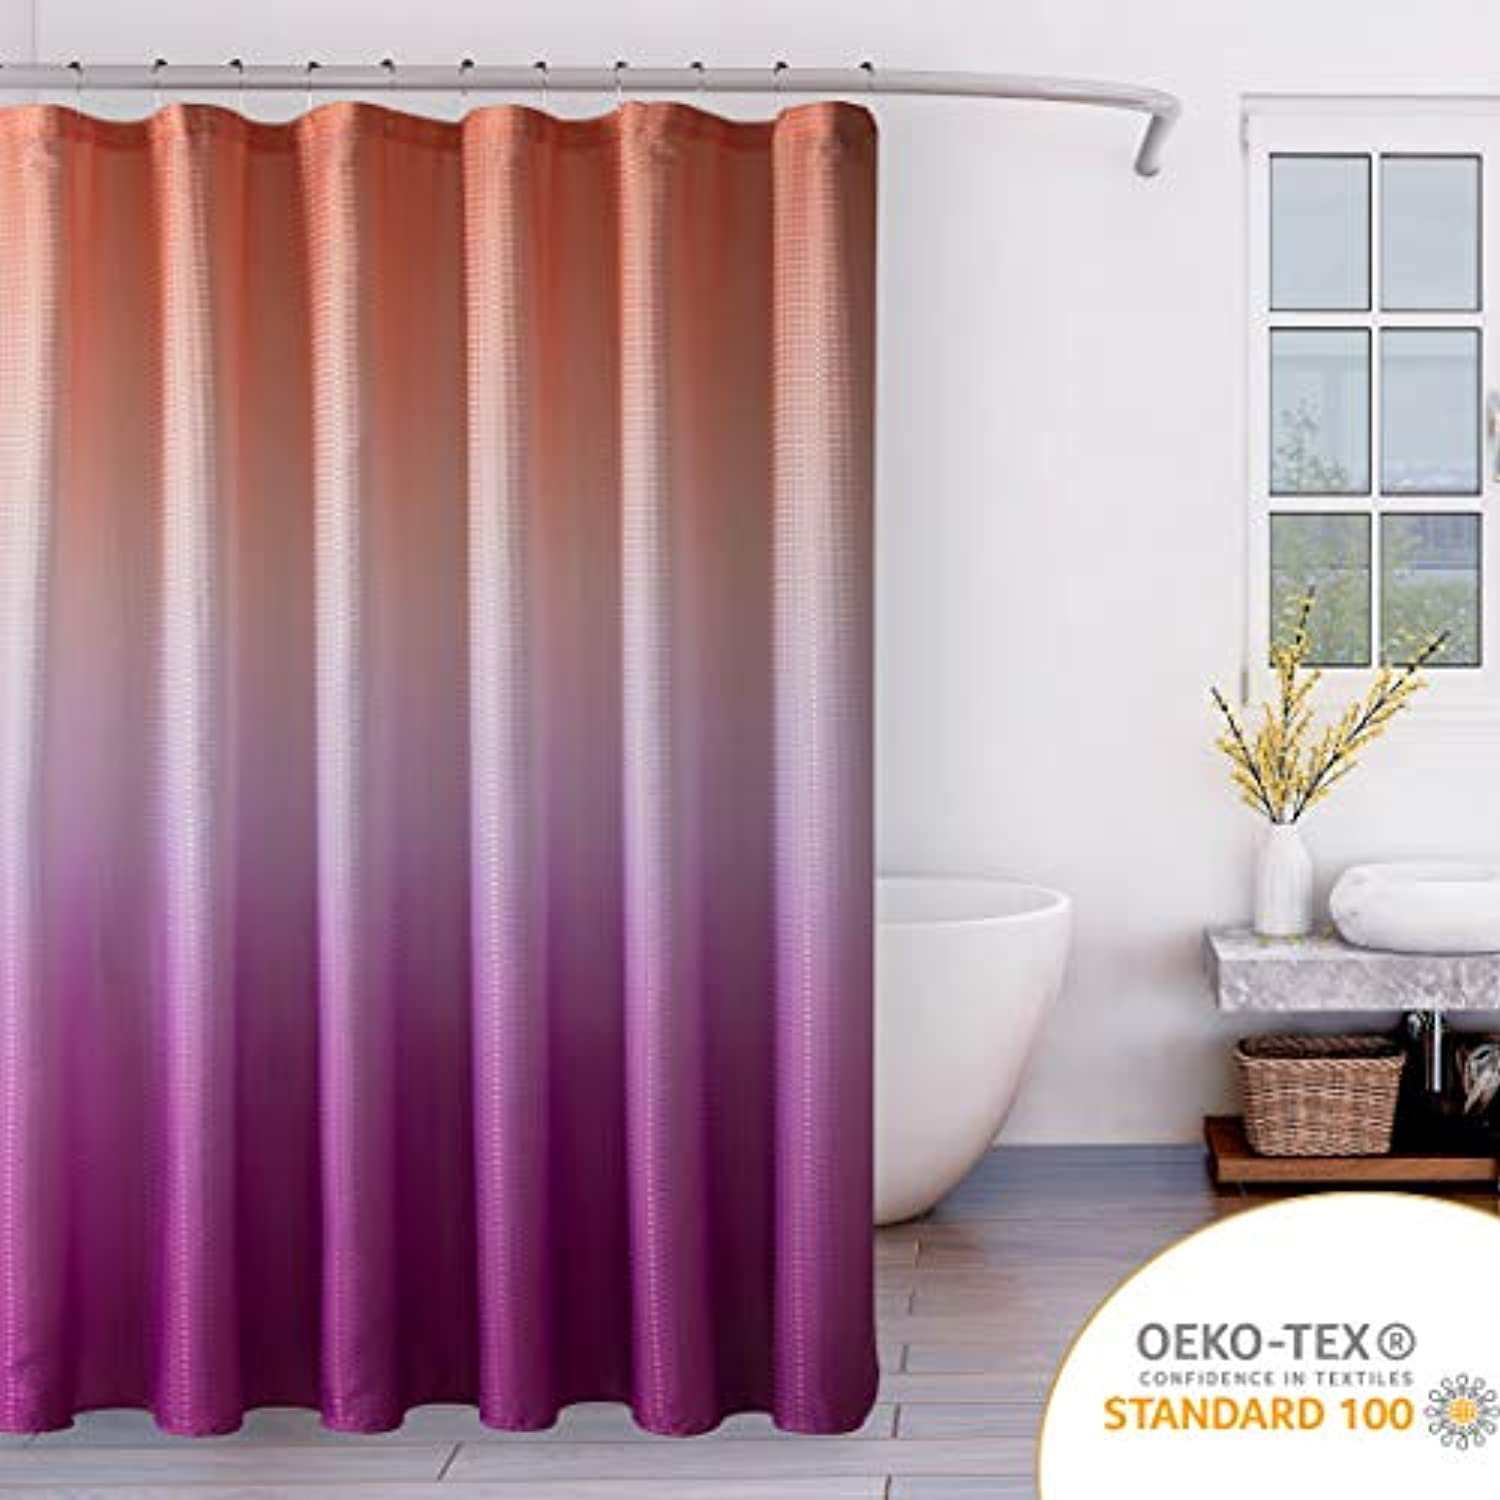 Ombre Textured Fabric Shower Curtain